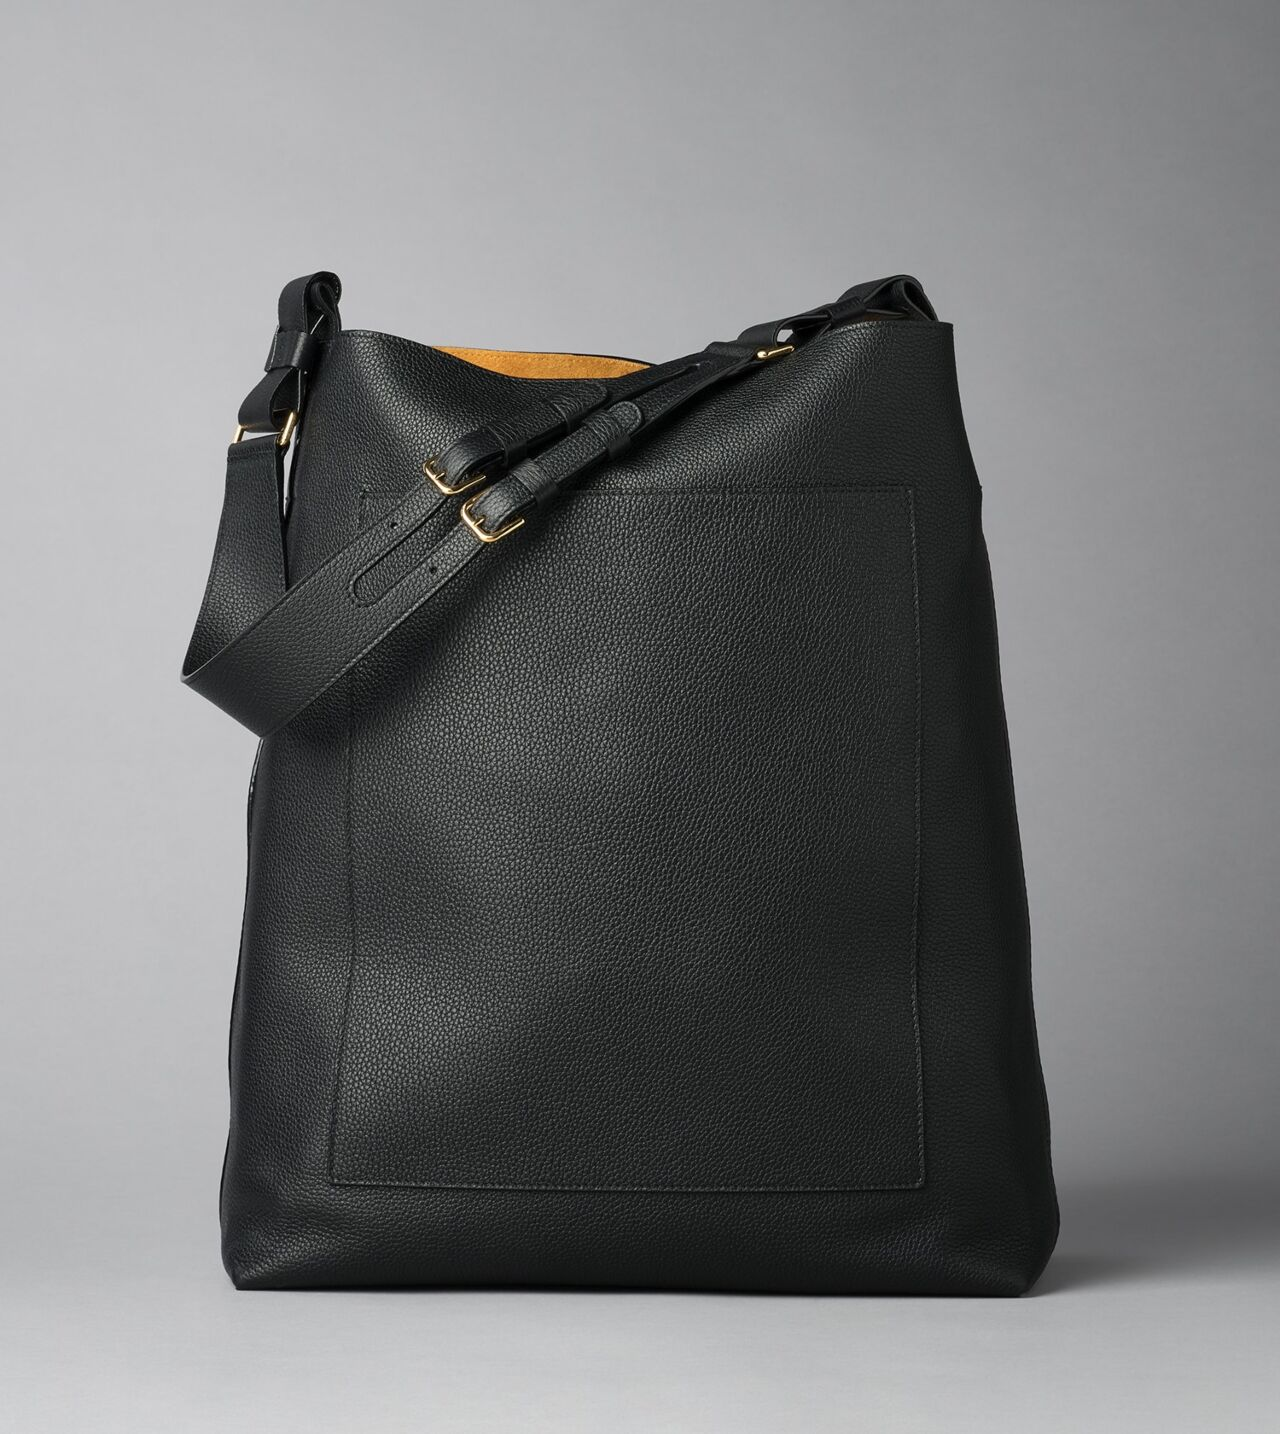 Picture of Byredo Eazy bag in Black tumbled leather